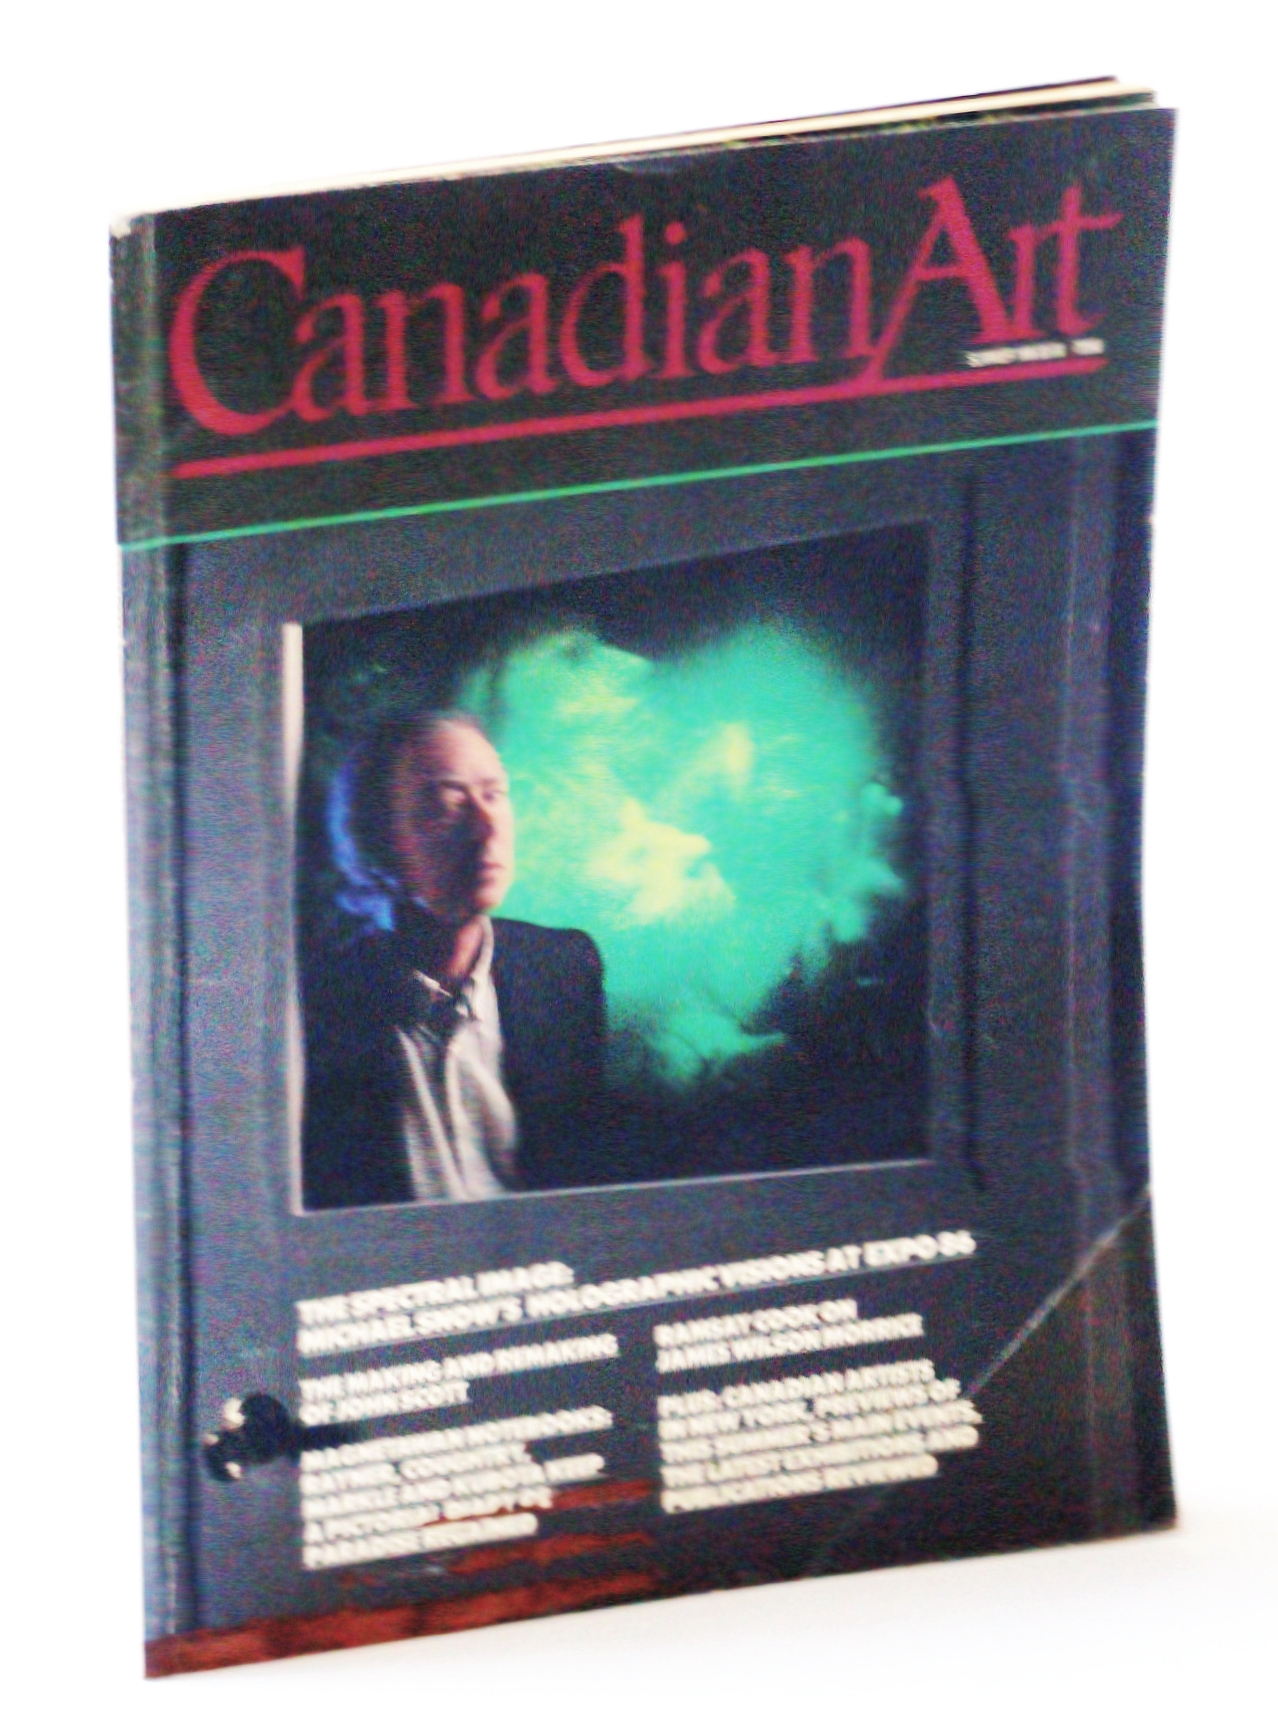 Image for Canadian Art Magazine, Summer / June 1986, Volume 3, Number 2: Michael Snow's Holographic Visions at Expo 86